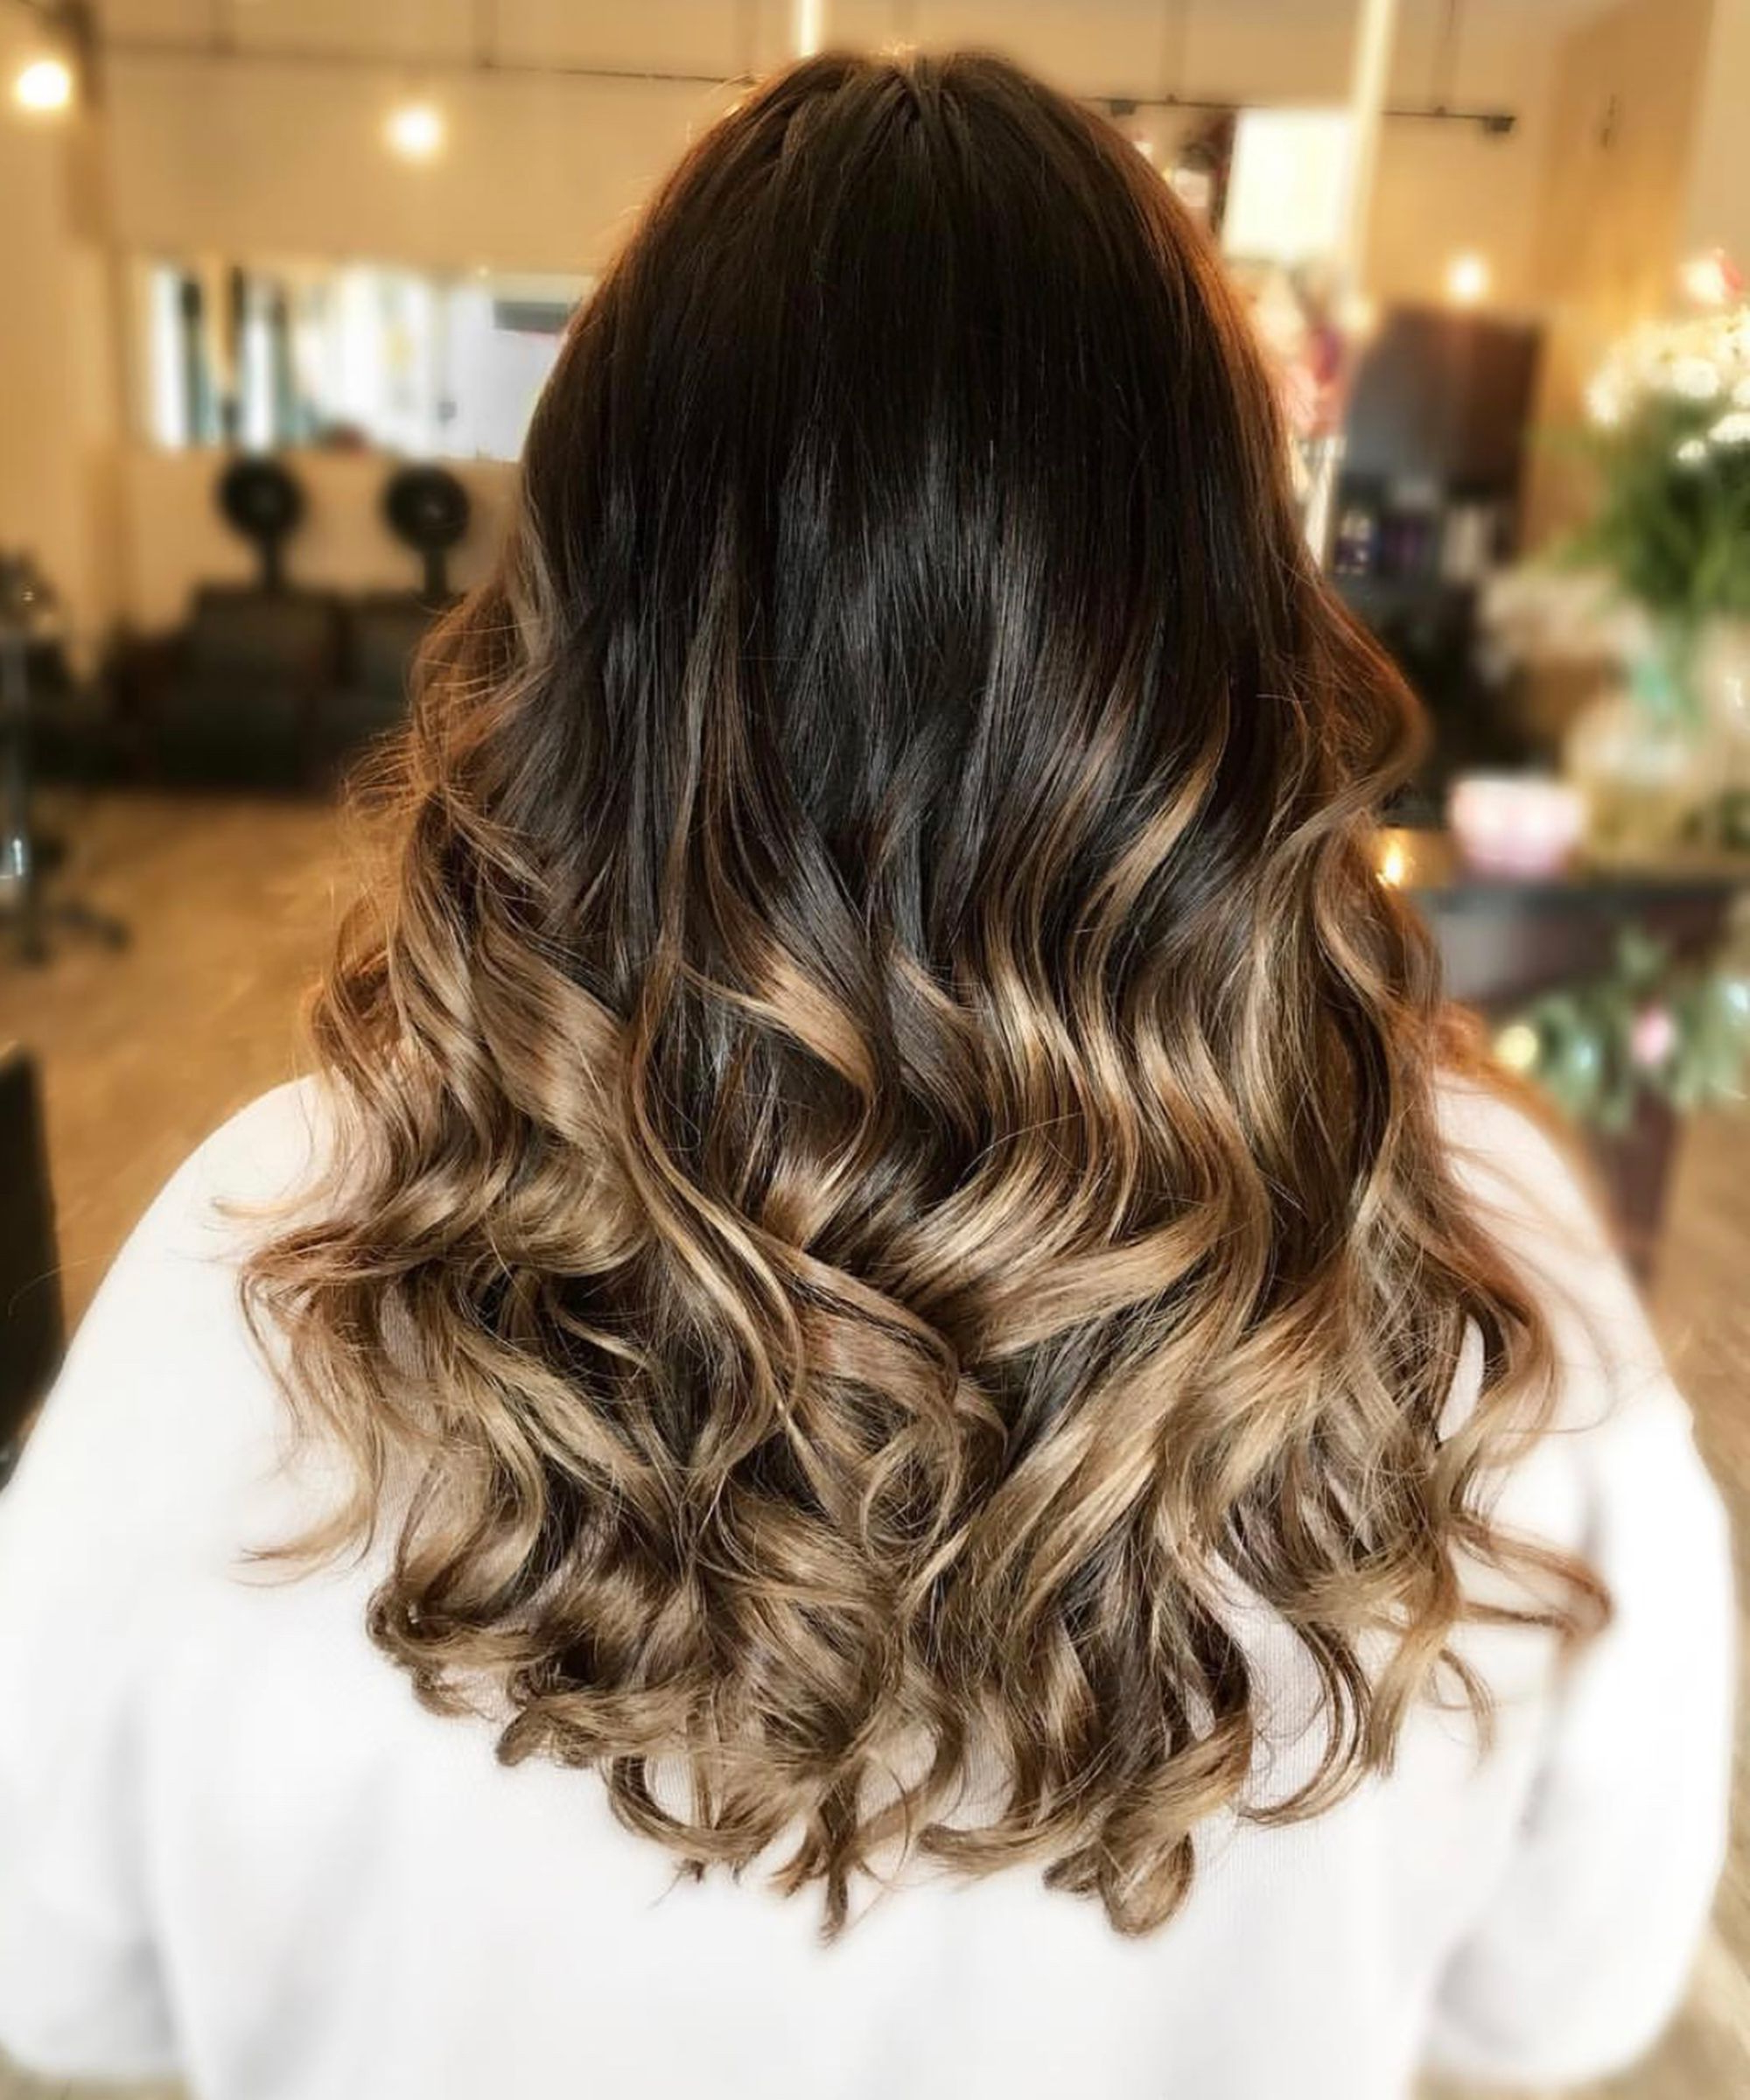 Trendy Long Waves Hairstyles With Subtle Highlights With Regard To Hair Highlights – Tips, Tricks, Diy (Gallery 20 of 20)